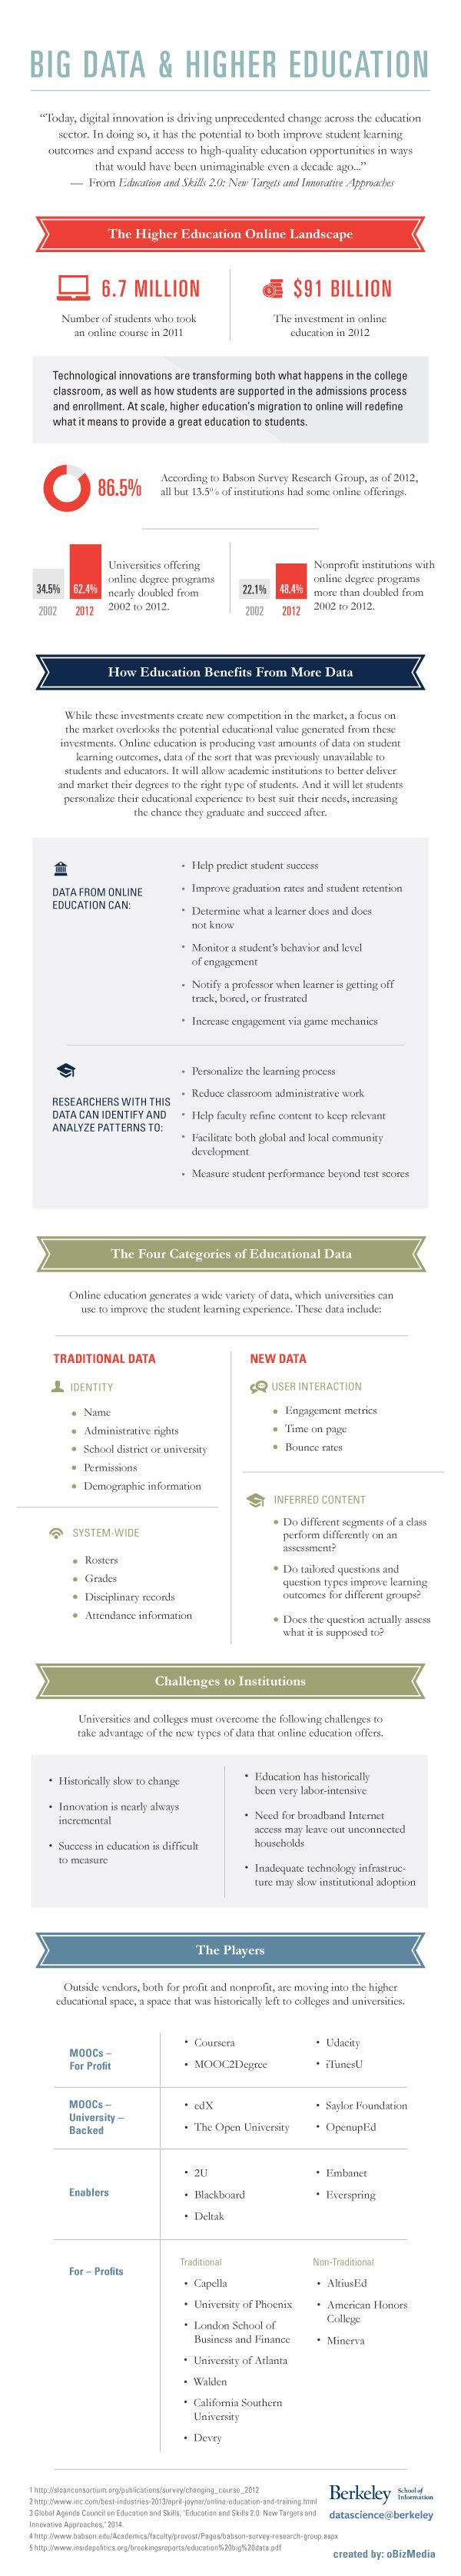 Big Data And Higher Education  #Infographic #BigData #HigherEducation